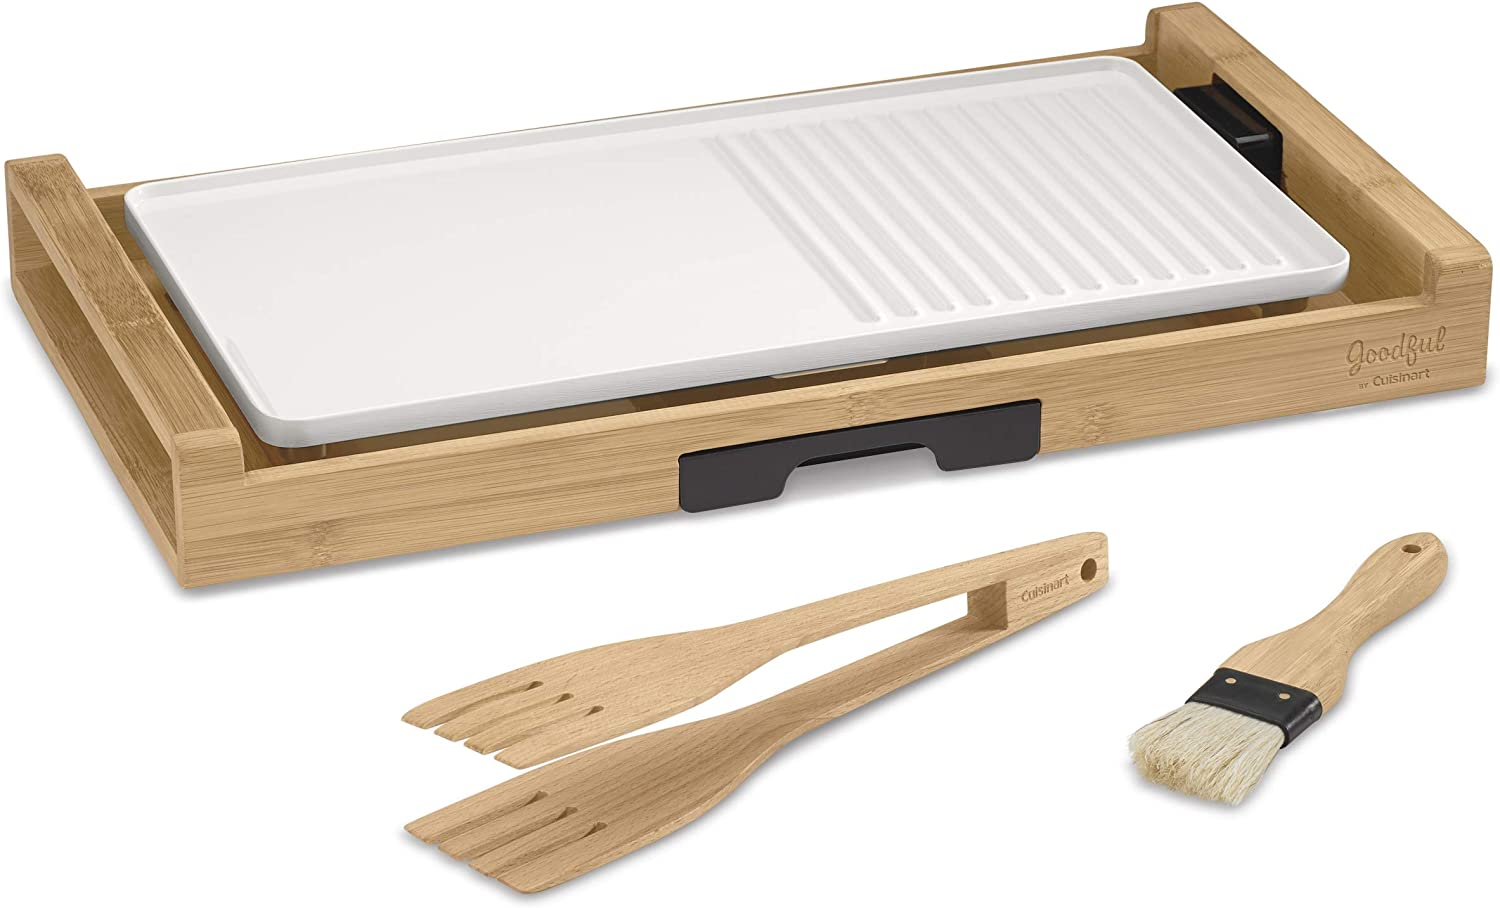 Goodful by Cuisinart GG1500GF At the price of surprise Full Griddl New York Mall Grill Griddle